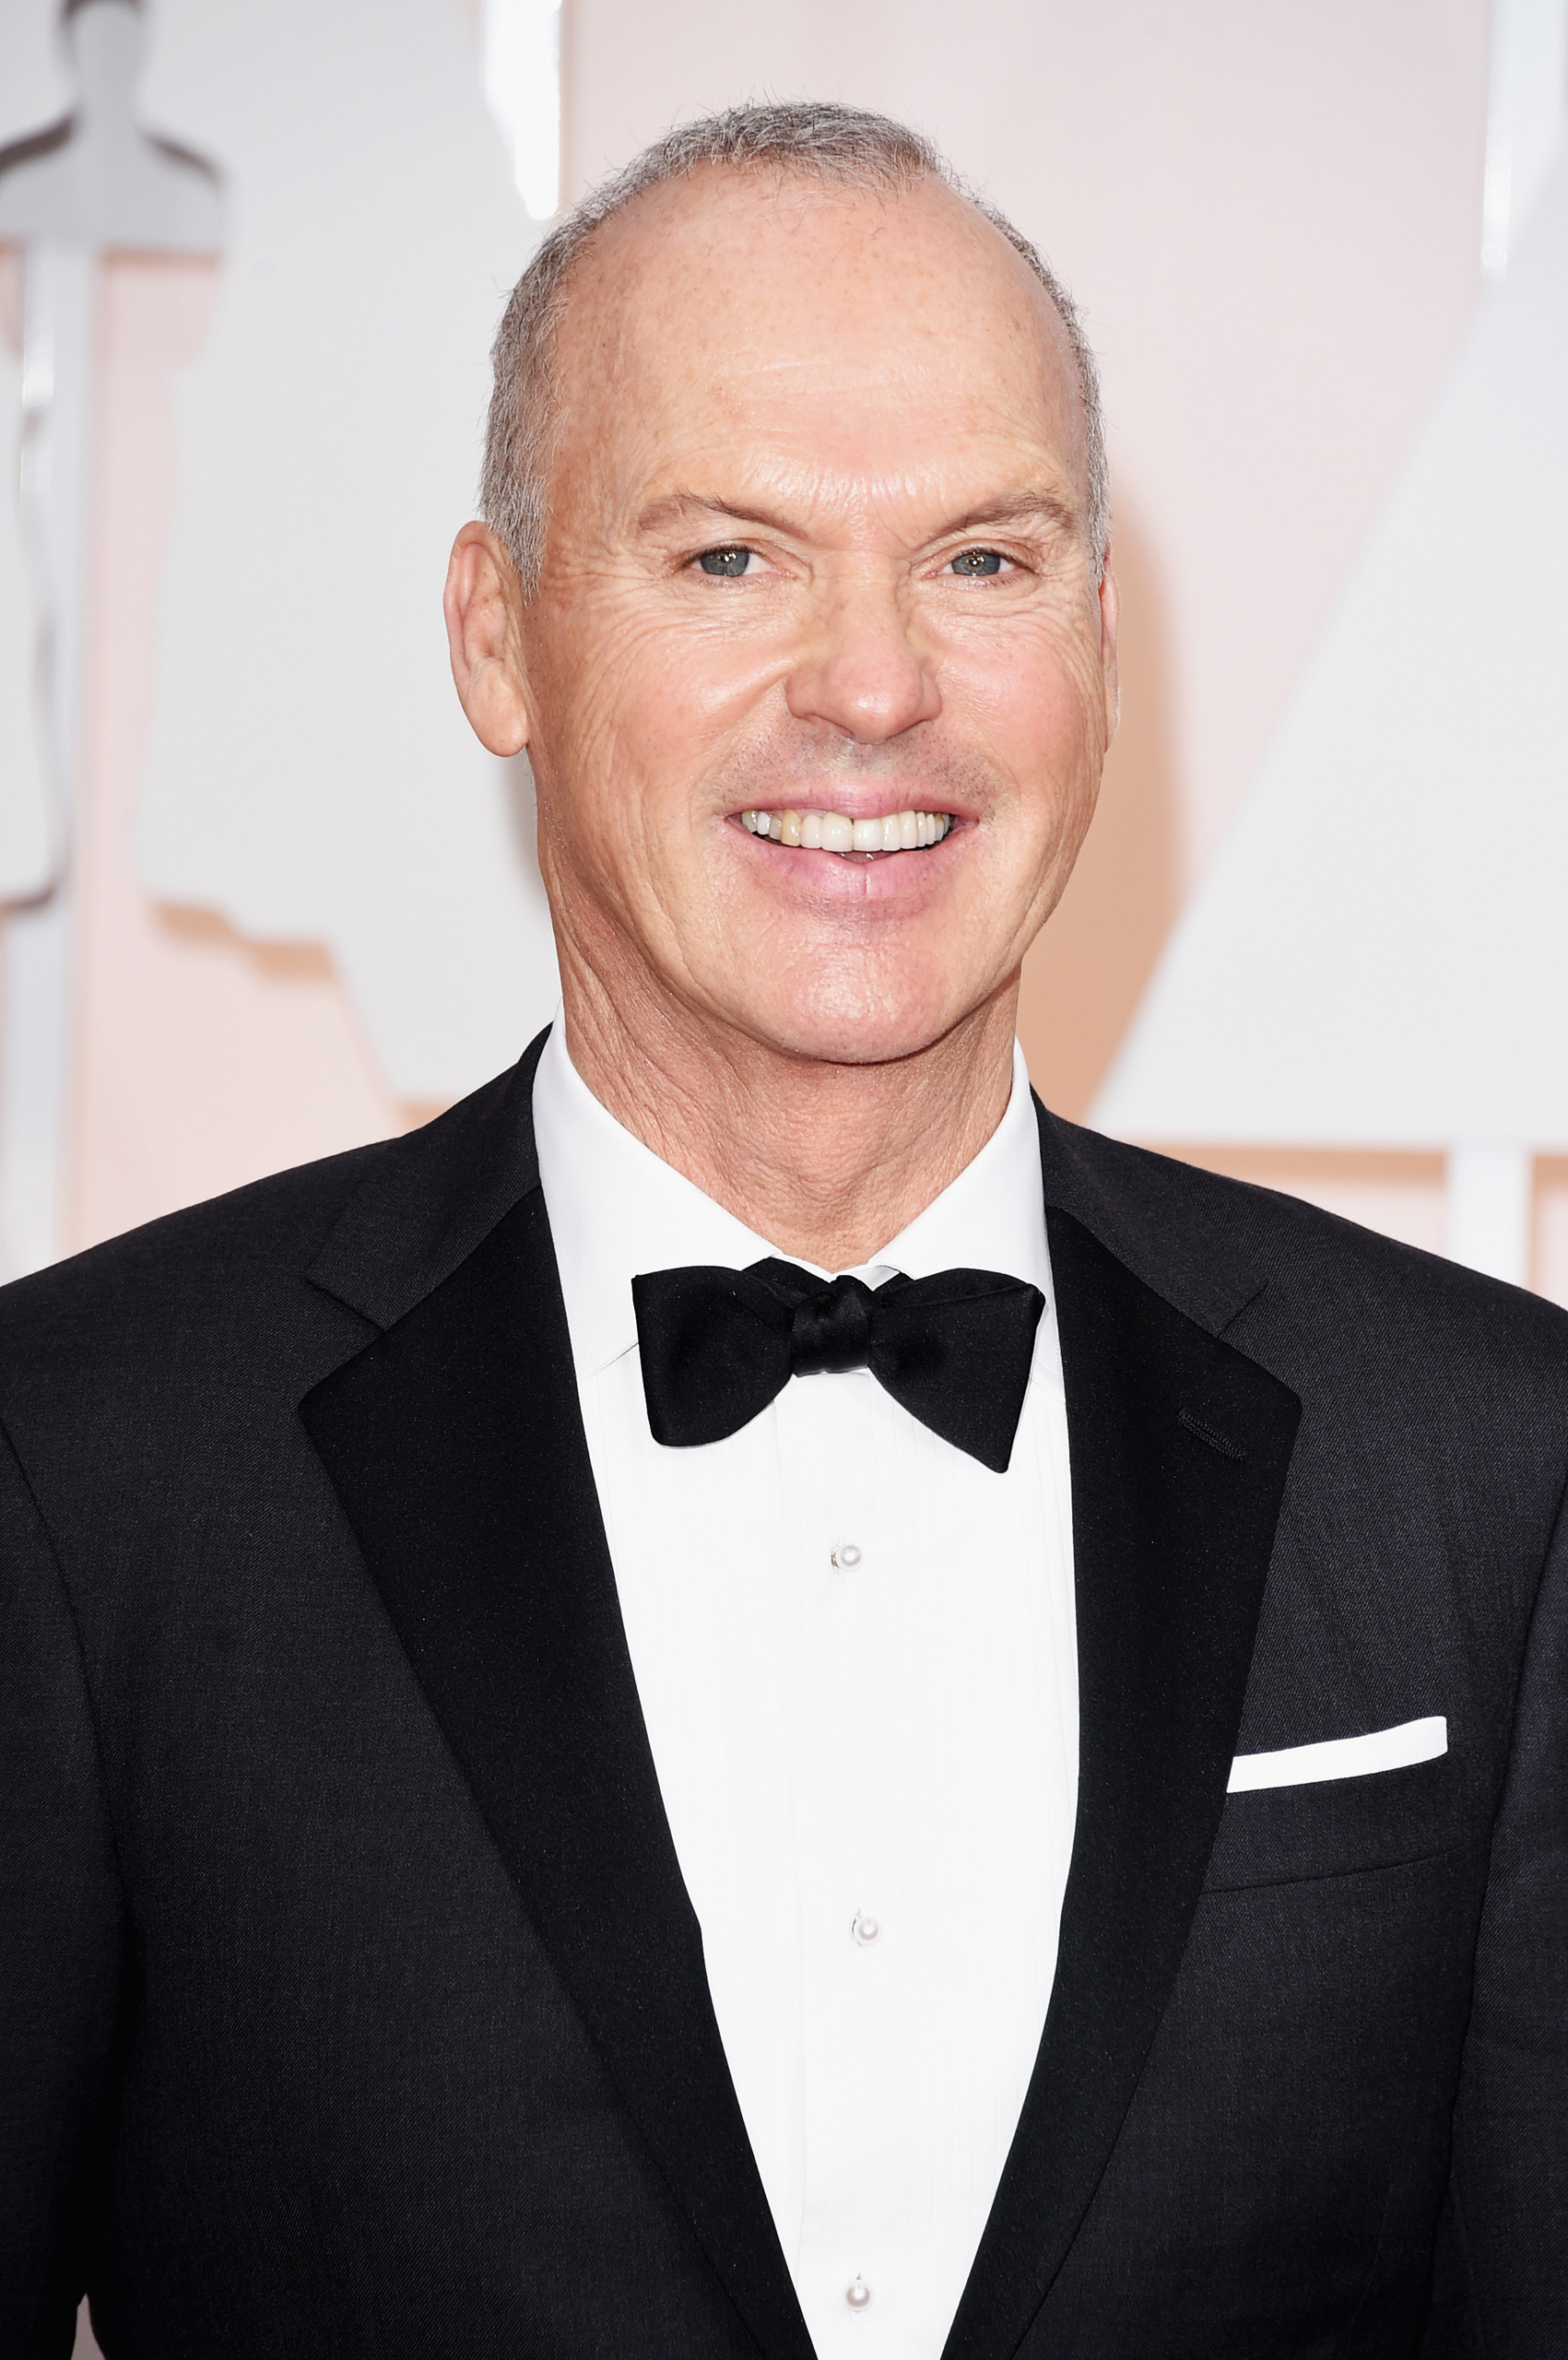 Michael Keaton attends the 87th Annual Academy Awards on Feb. 22, 2015 in Hollywood, Calif.